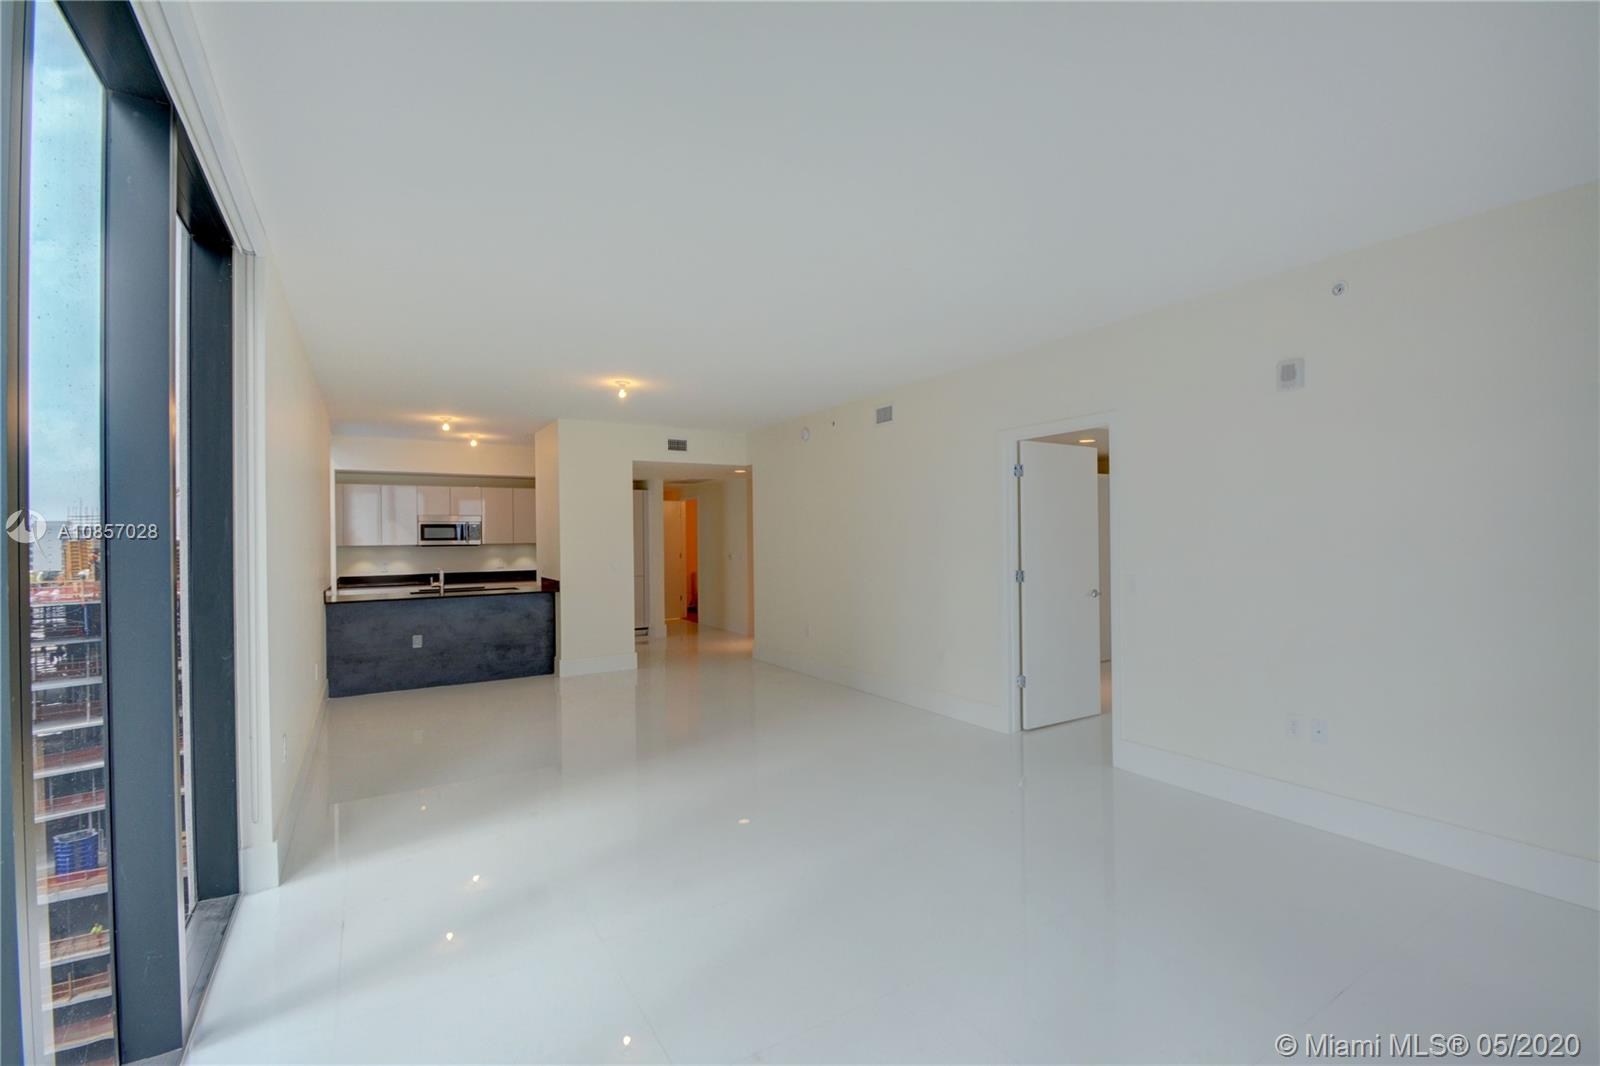 1010 Brickell Ave # 2505, Miami, Florida 33131, 3 Bedrooms Bedrooms, ,3 BathroomsBathrooms,Residential,For Sale,1010 Brickell Ave # 2505,A10857028